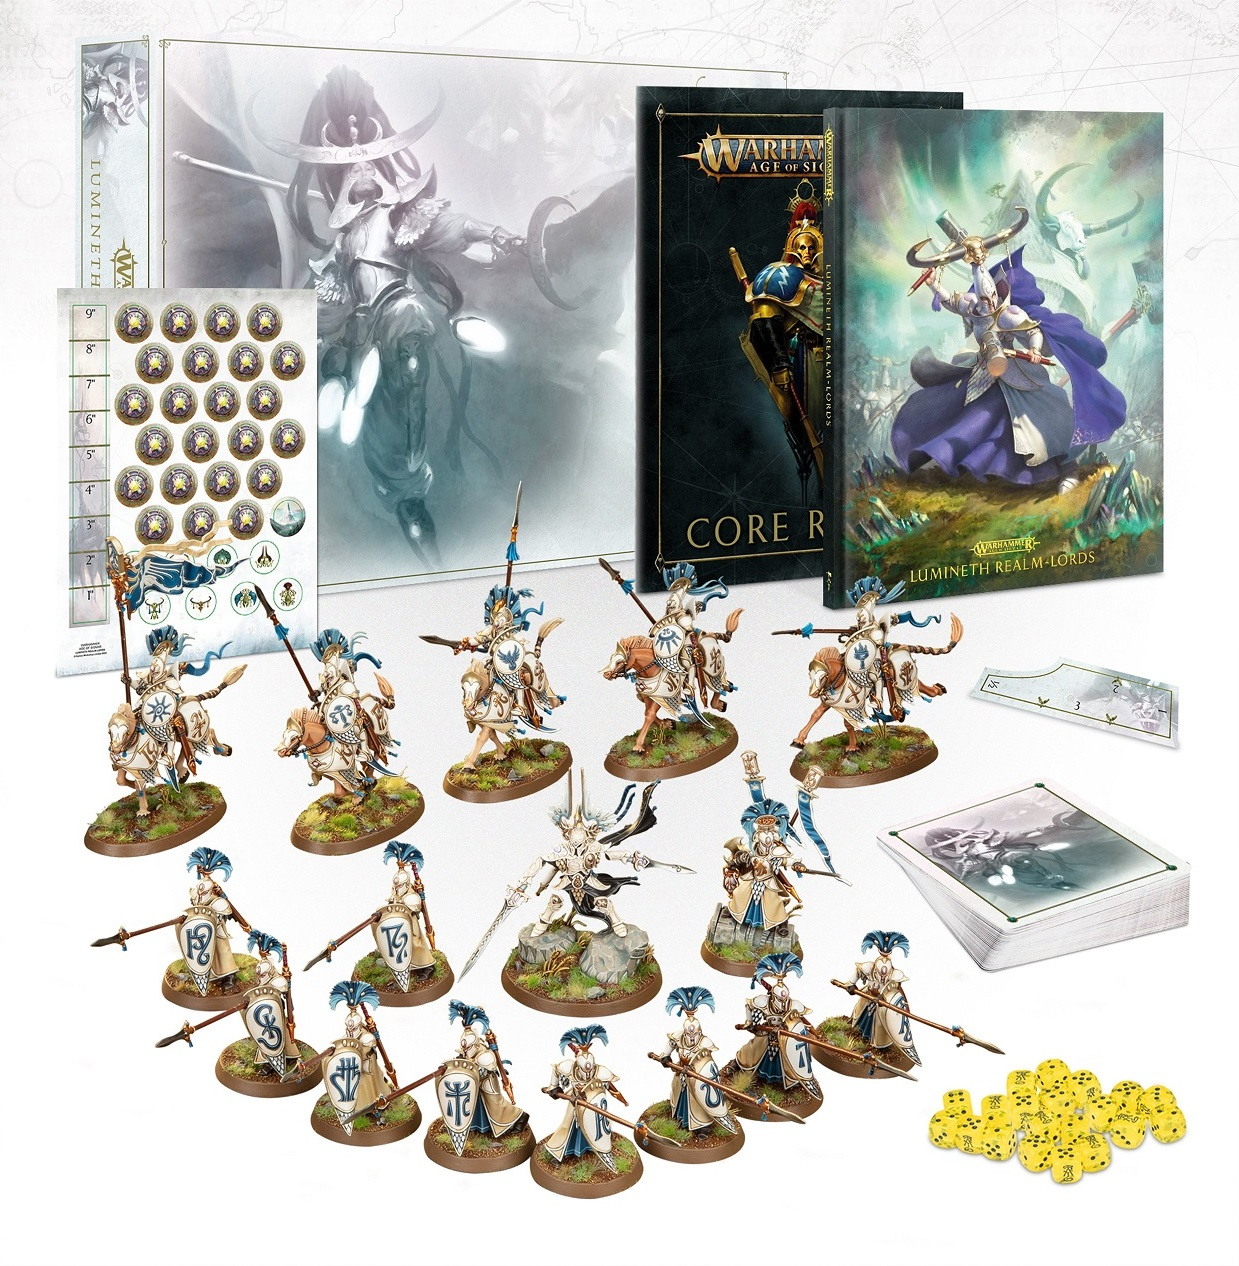 Lumineth Realm Lords Launch set Black Friday deal